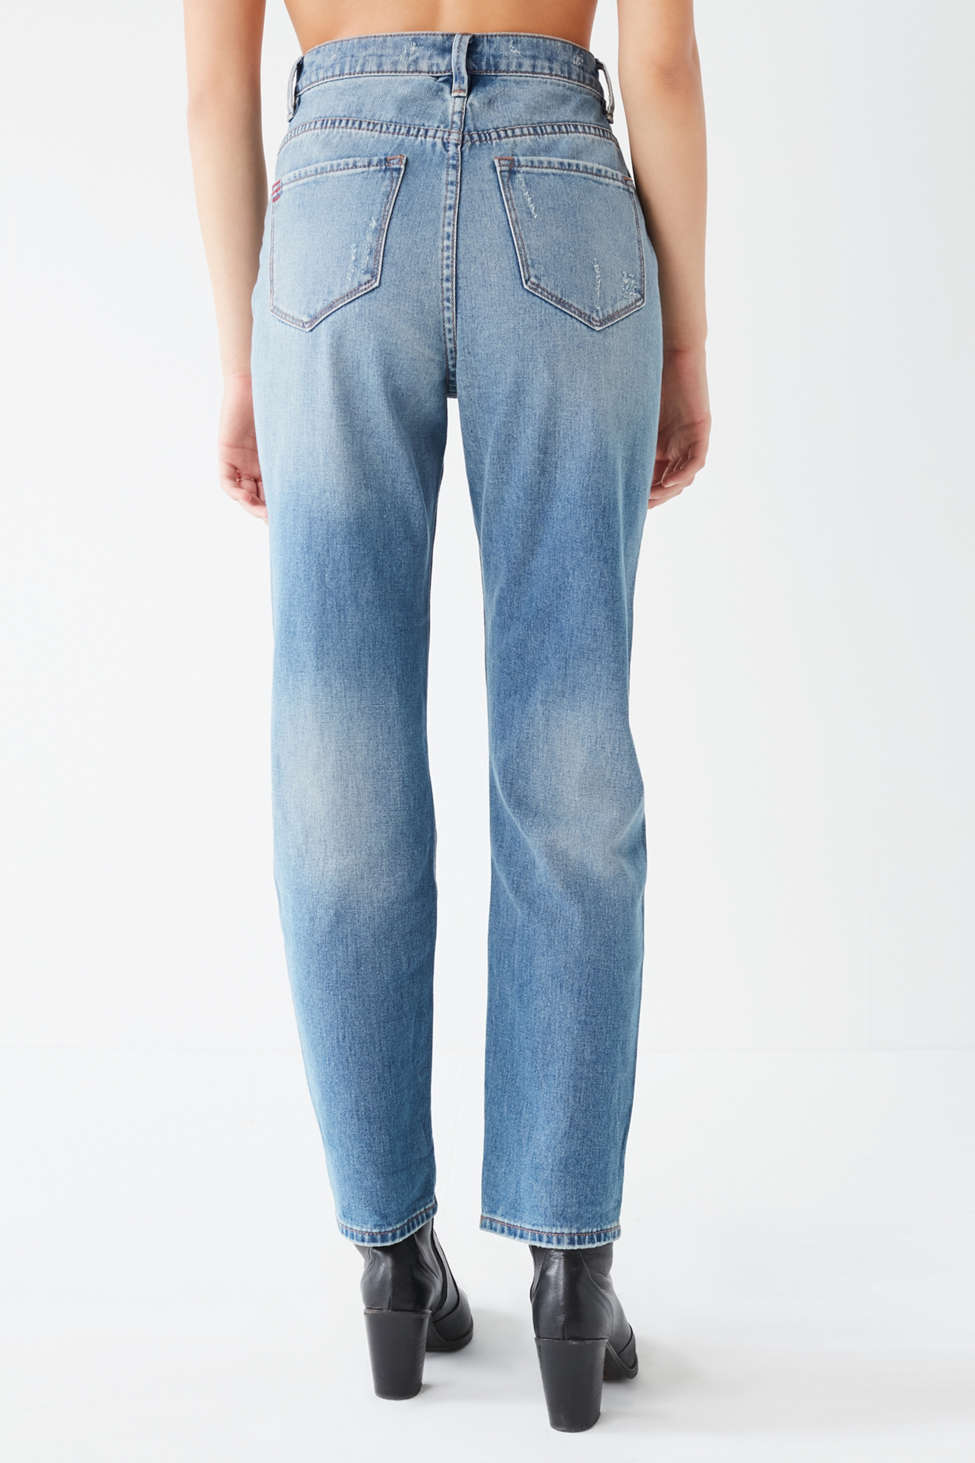 Bdg Mom Jean Vintage Wash Urban Outfitters